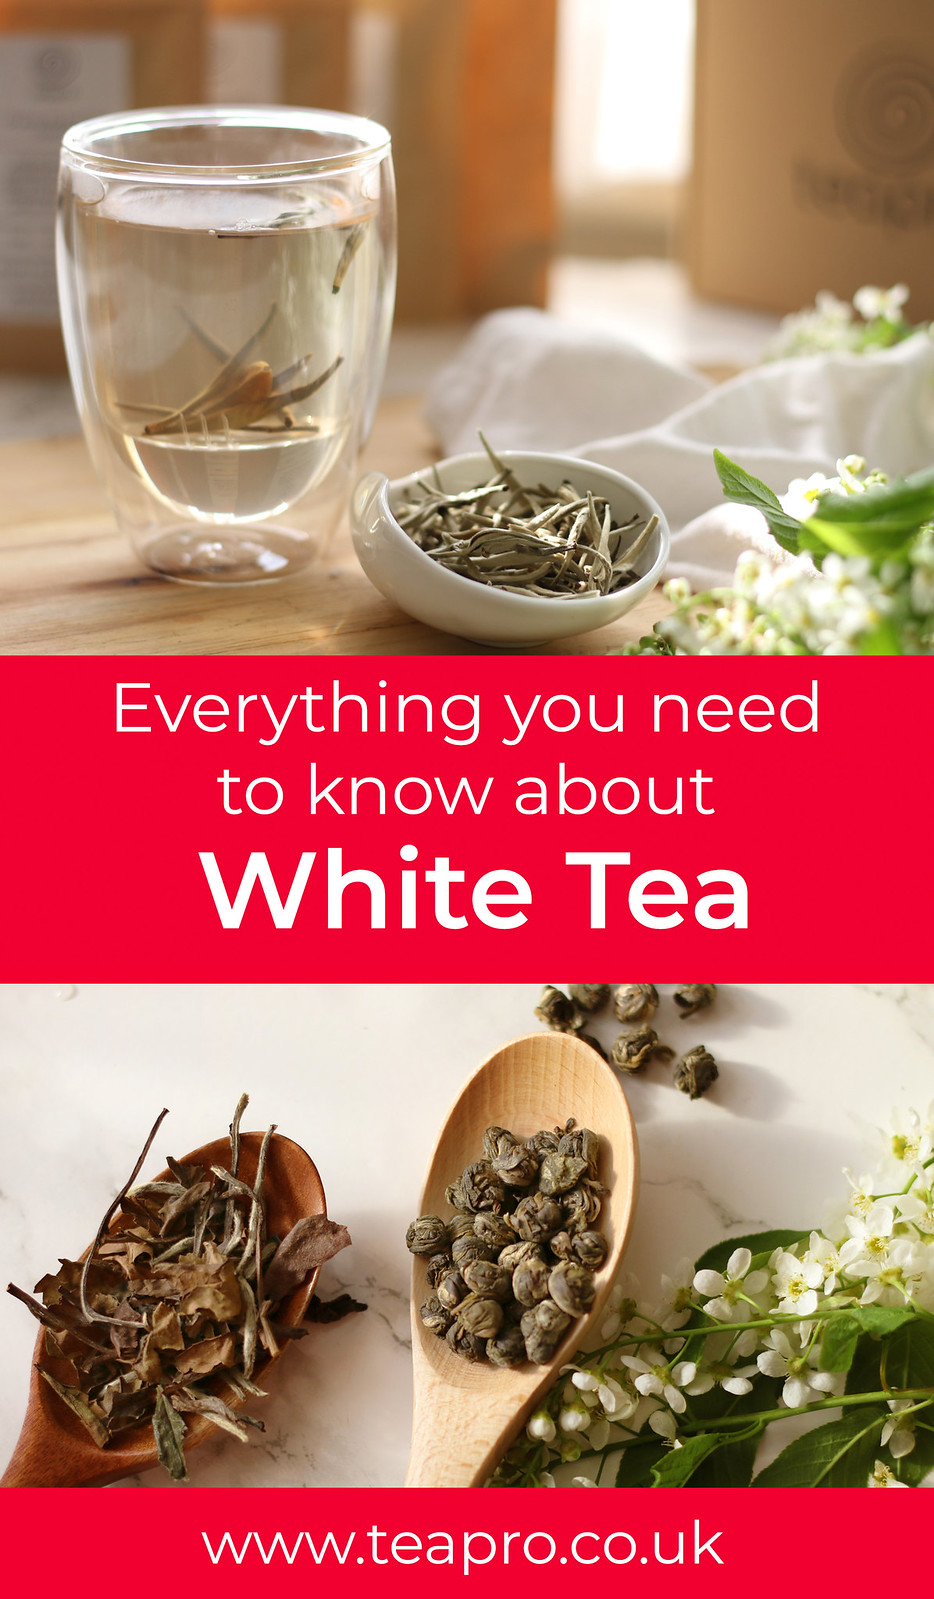 Everything You Need to Know about White Tea by Teapro